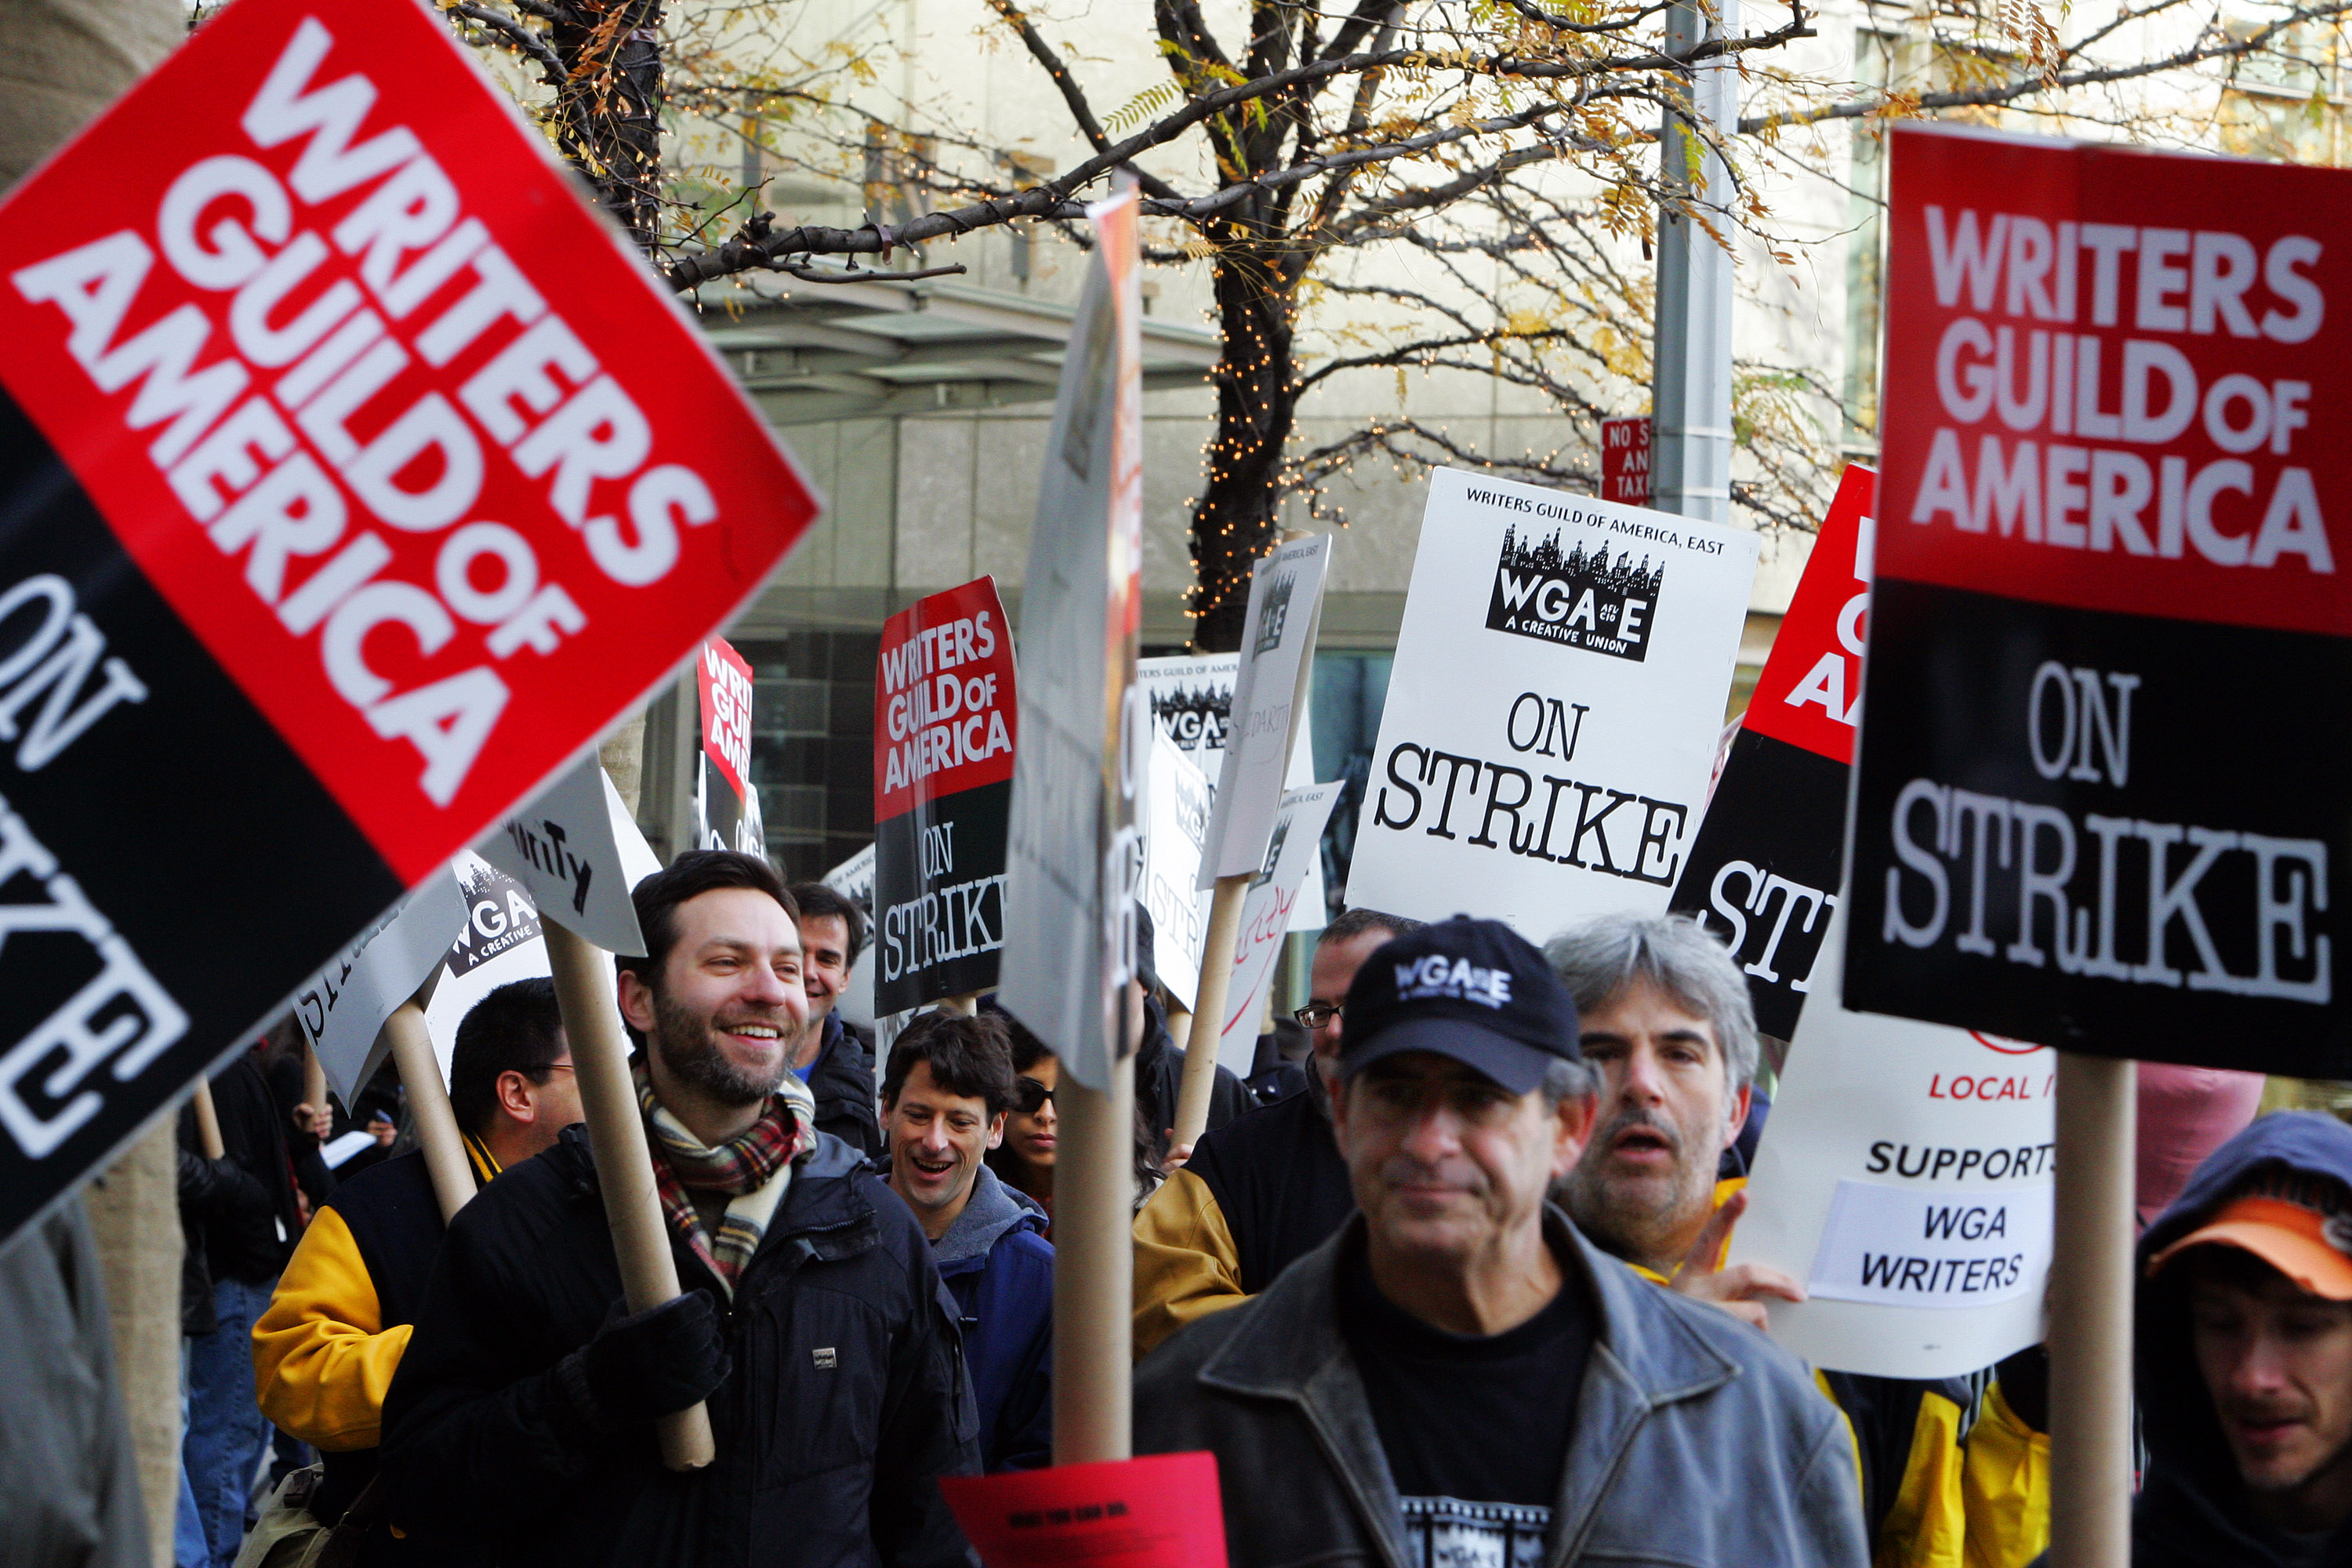 The Writers Guild of America strike continues into its fourth week as union members picket in front of the Time Warner building November 28, 2007 in New York City. Producers failed to reach an agreement with the striking writers after contract talks on Tuesday.